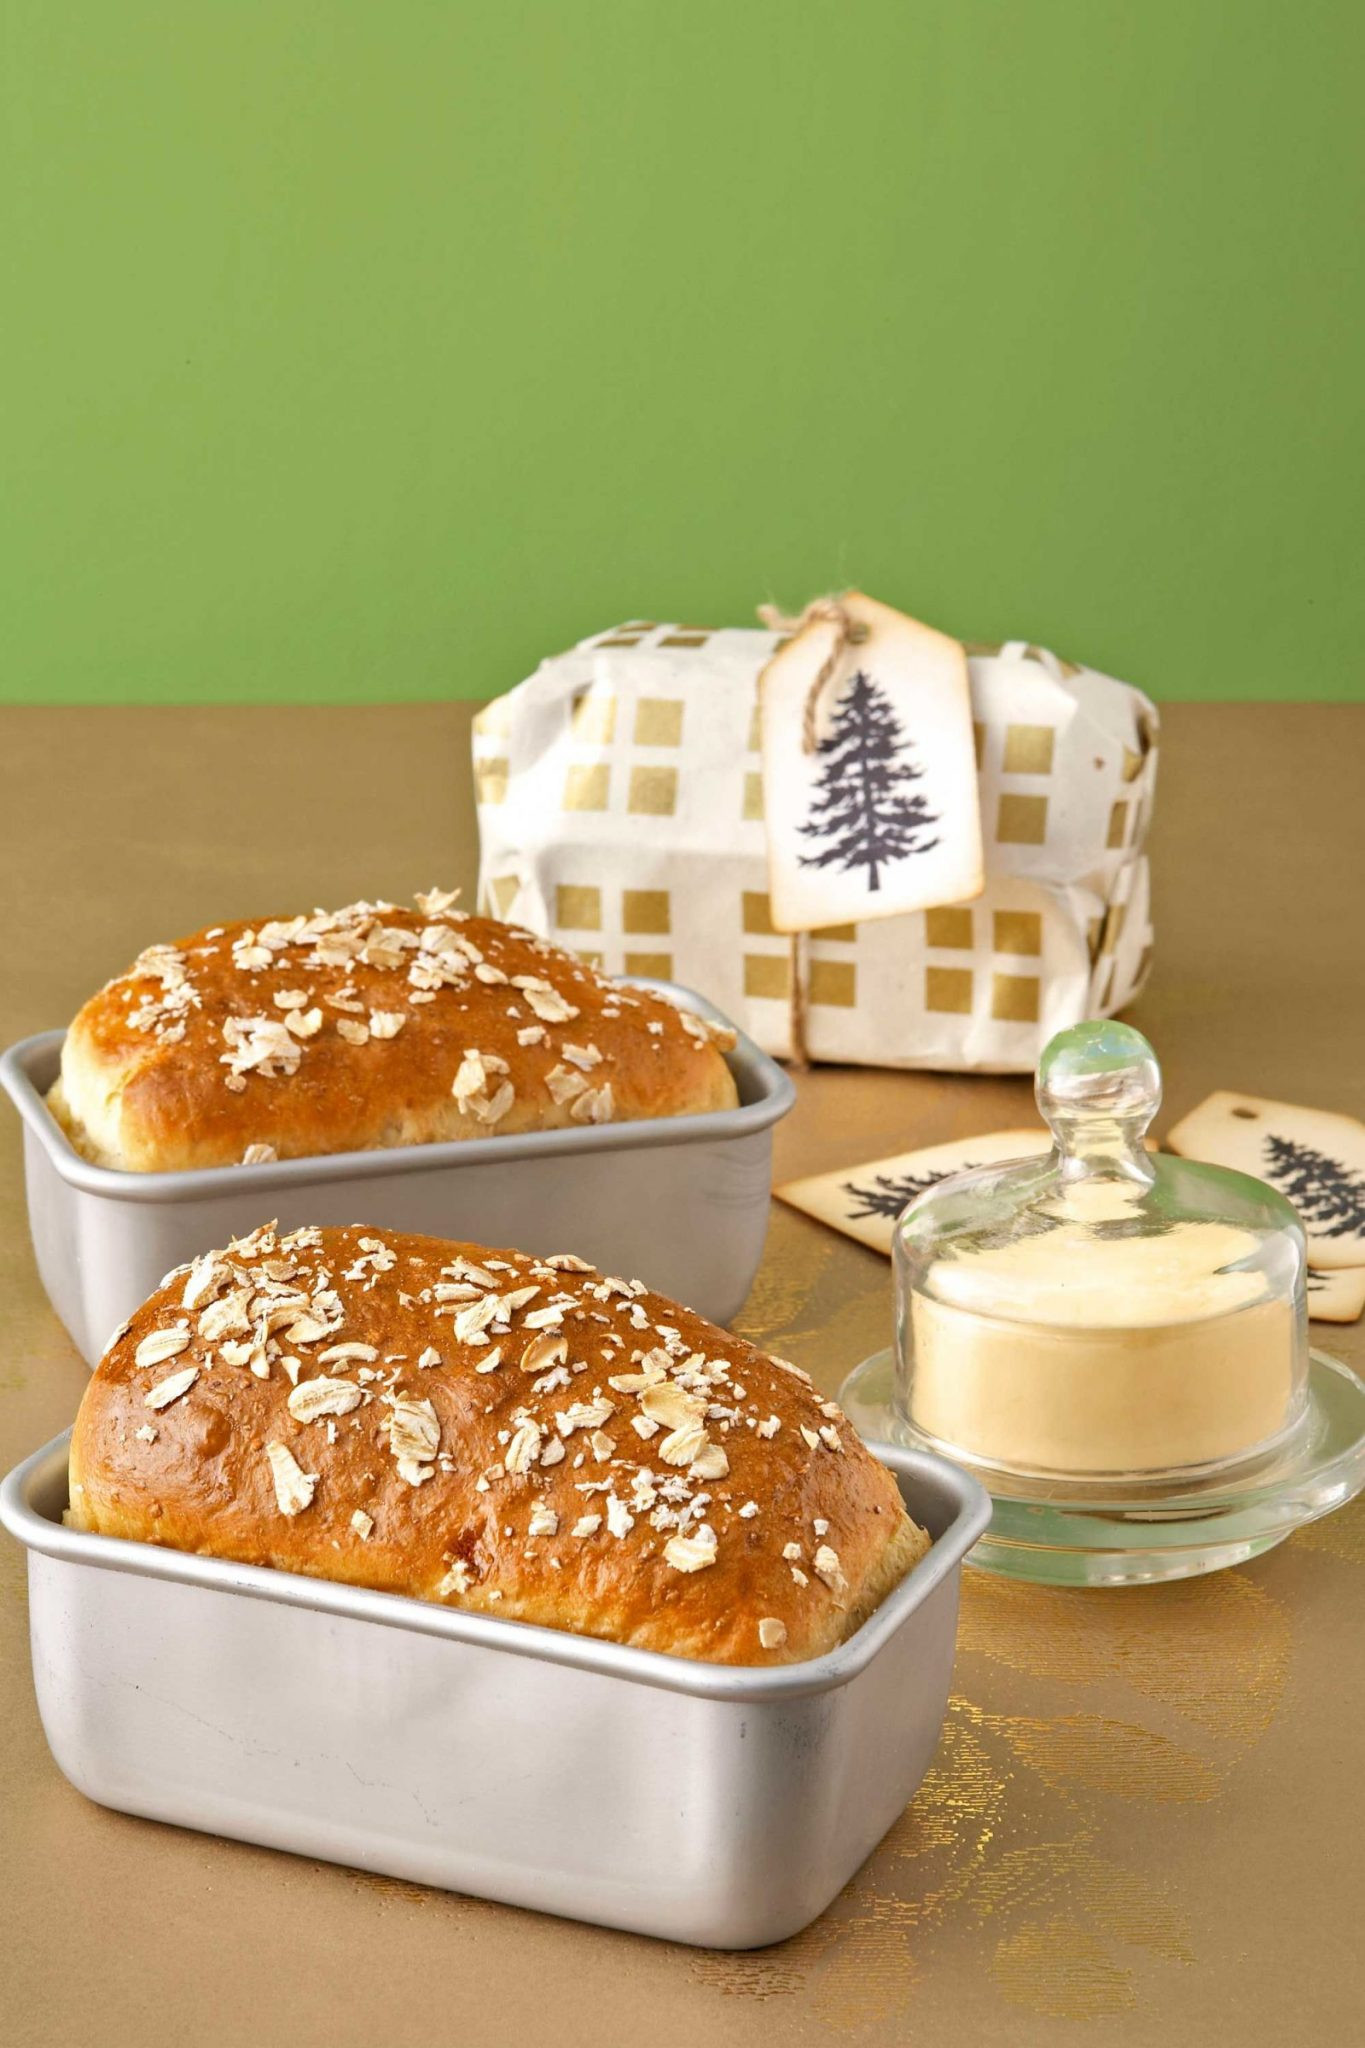 Best ideas about Holiday Food Gift Ideas . Save or Pin Homemade Holiday Food Gifts 31 Daily Now.